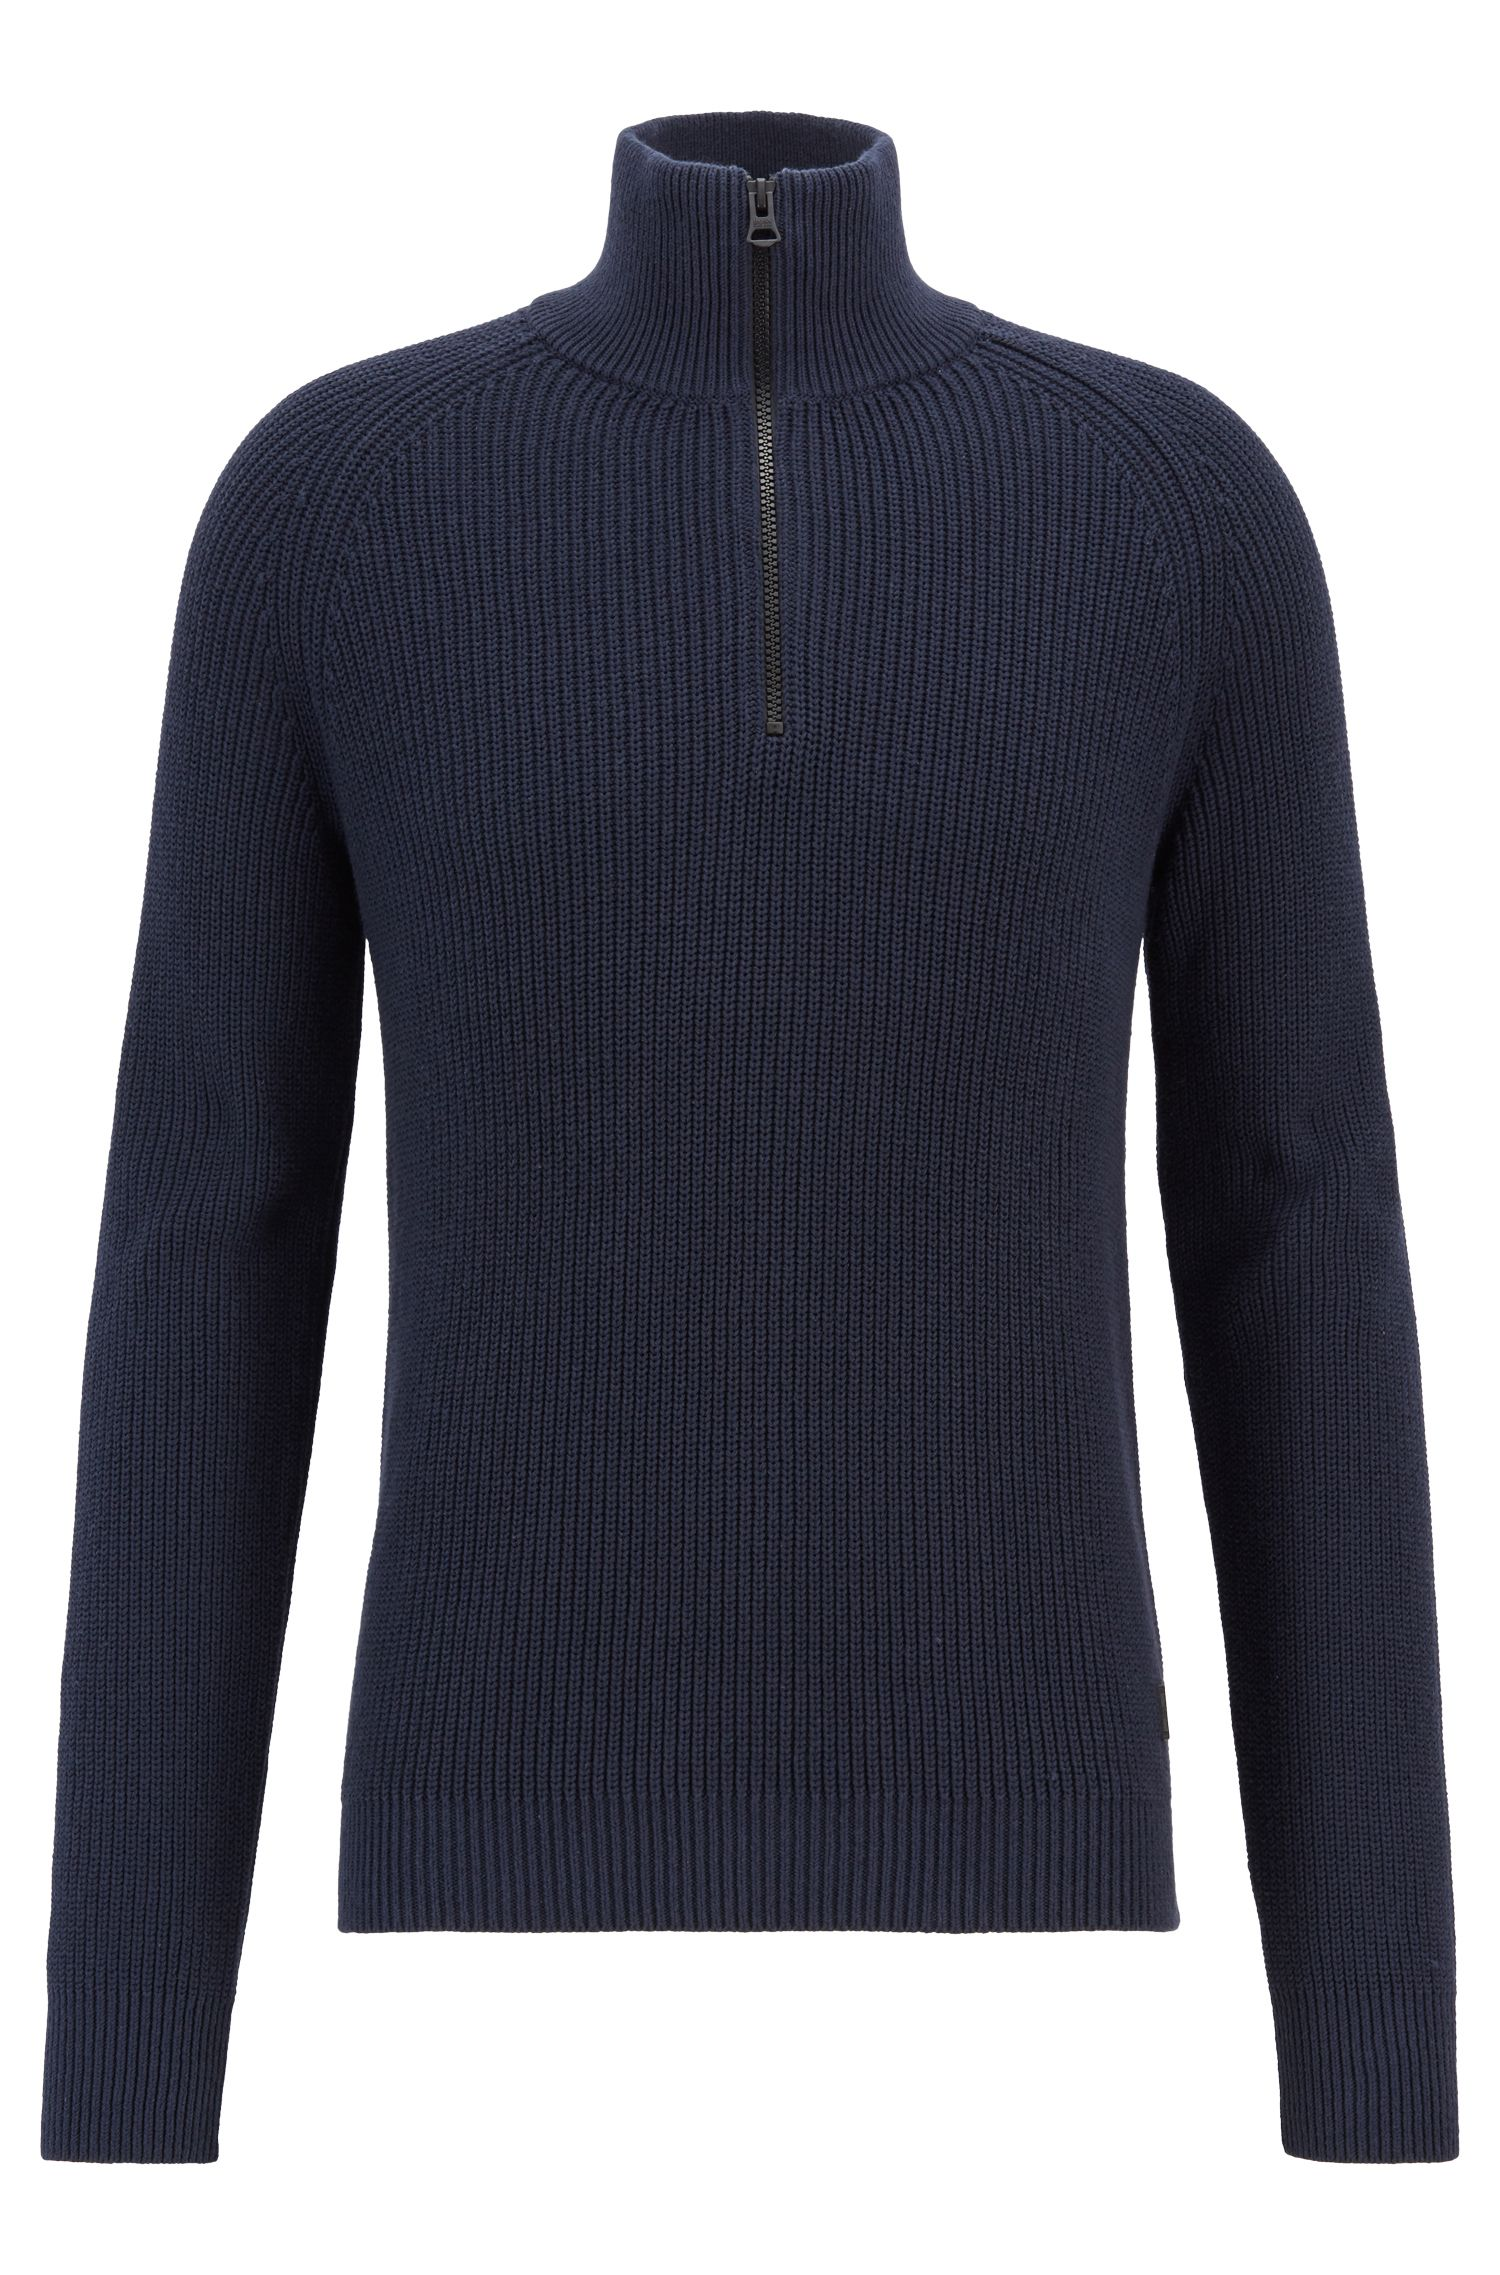 Zip-neck sweater in half-cardigan rib stitch cotton, Dark Blue